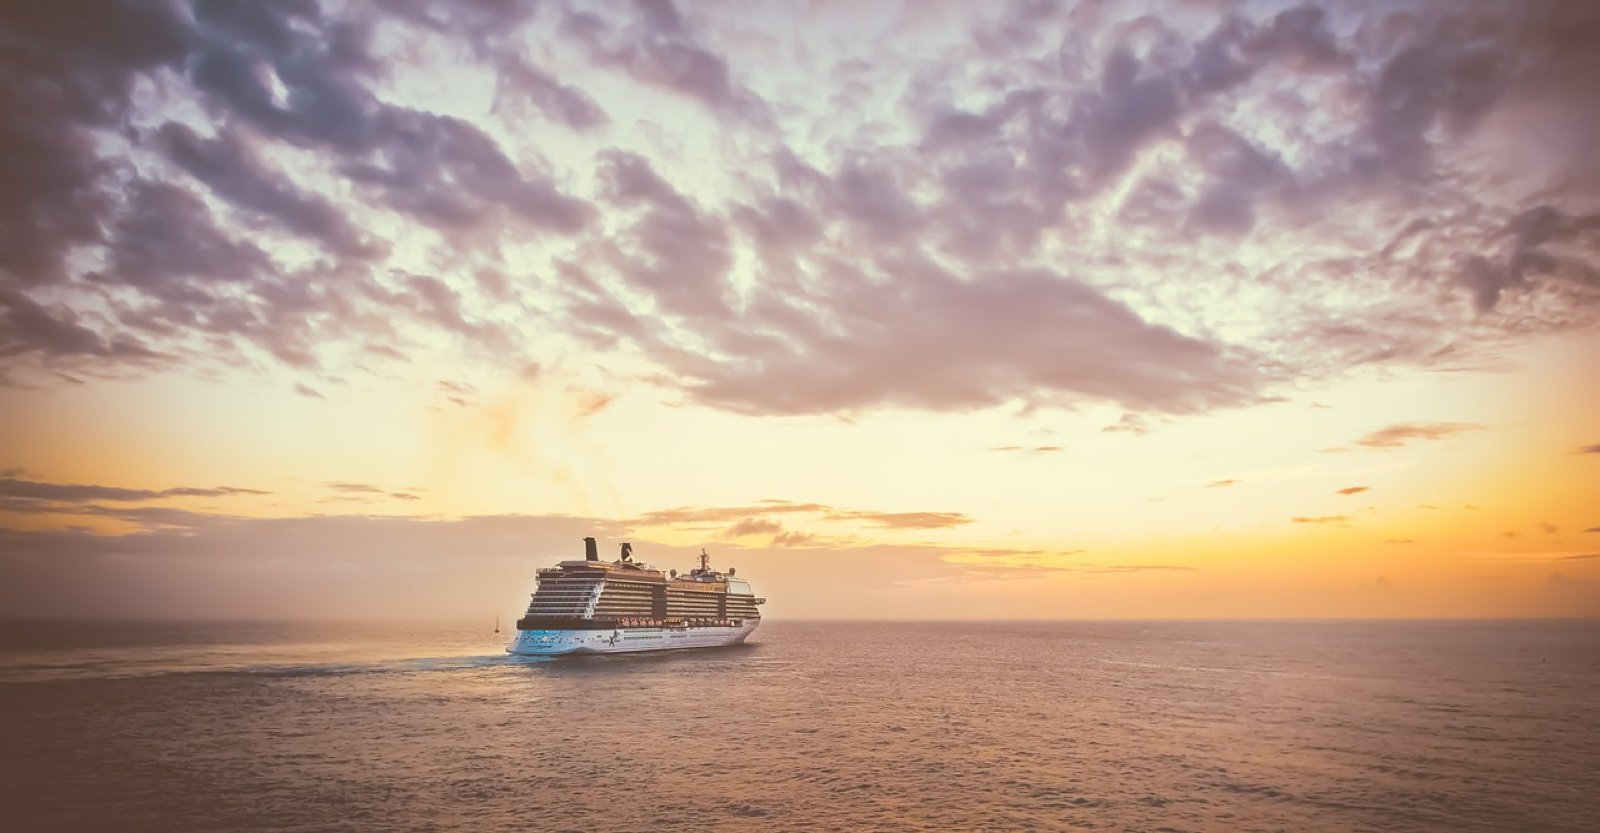 How To Find Cruise Ship Jobs: The Ultimate Guide - Goats On